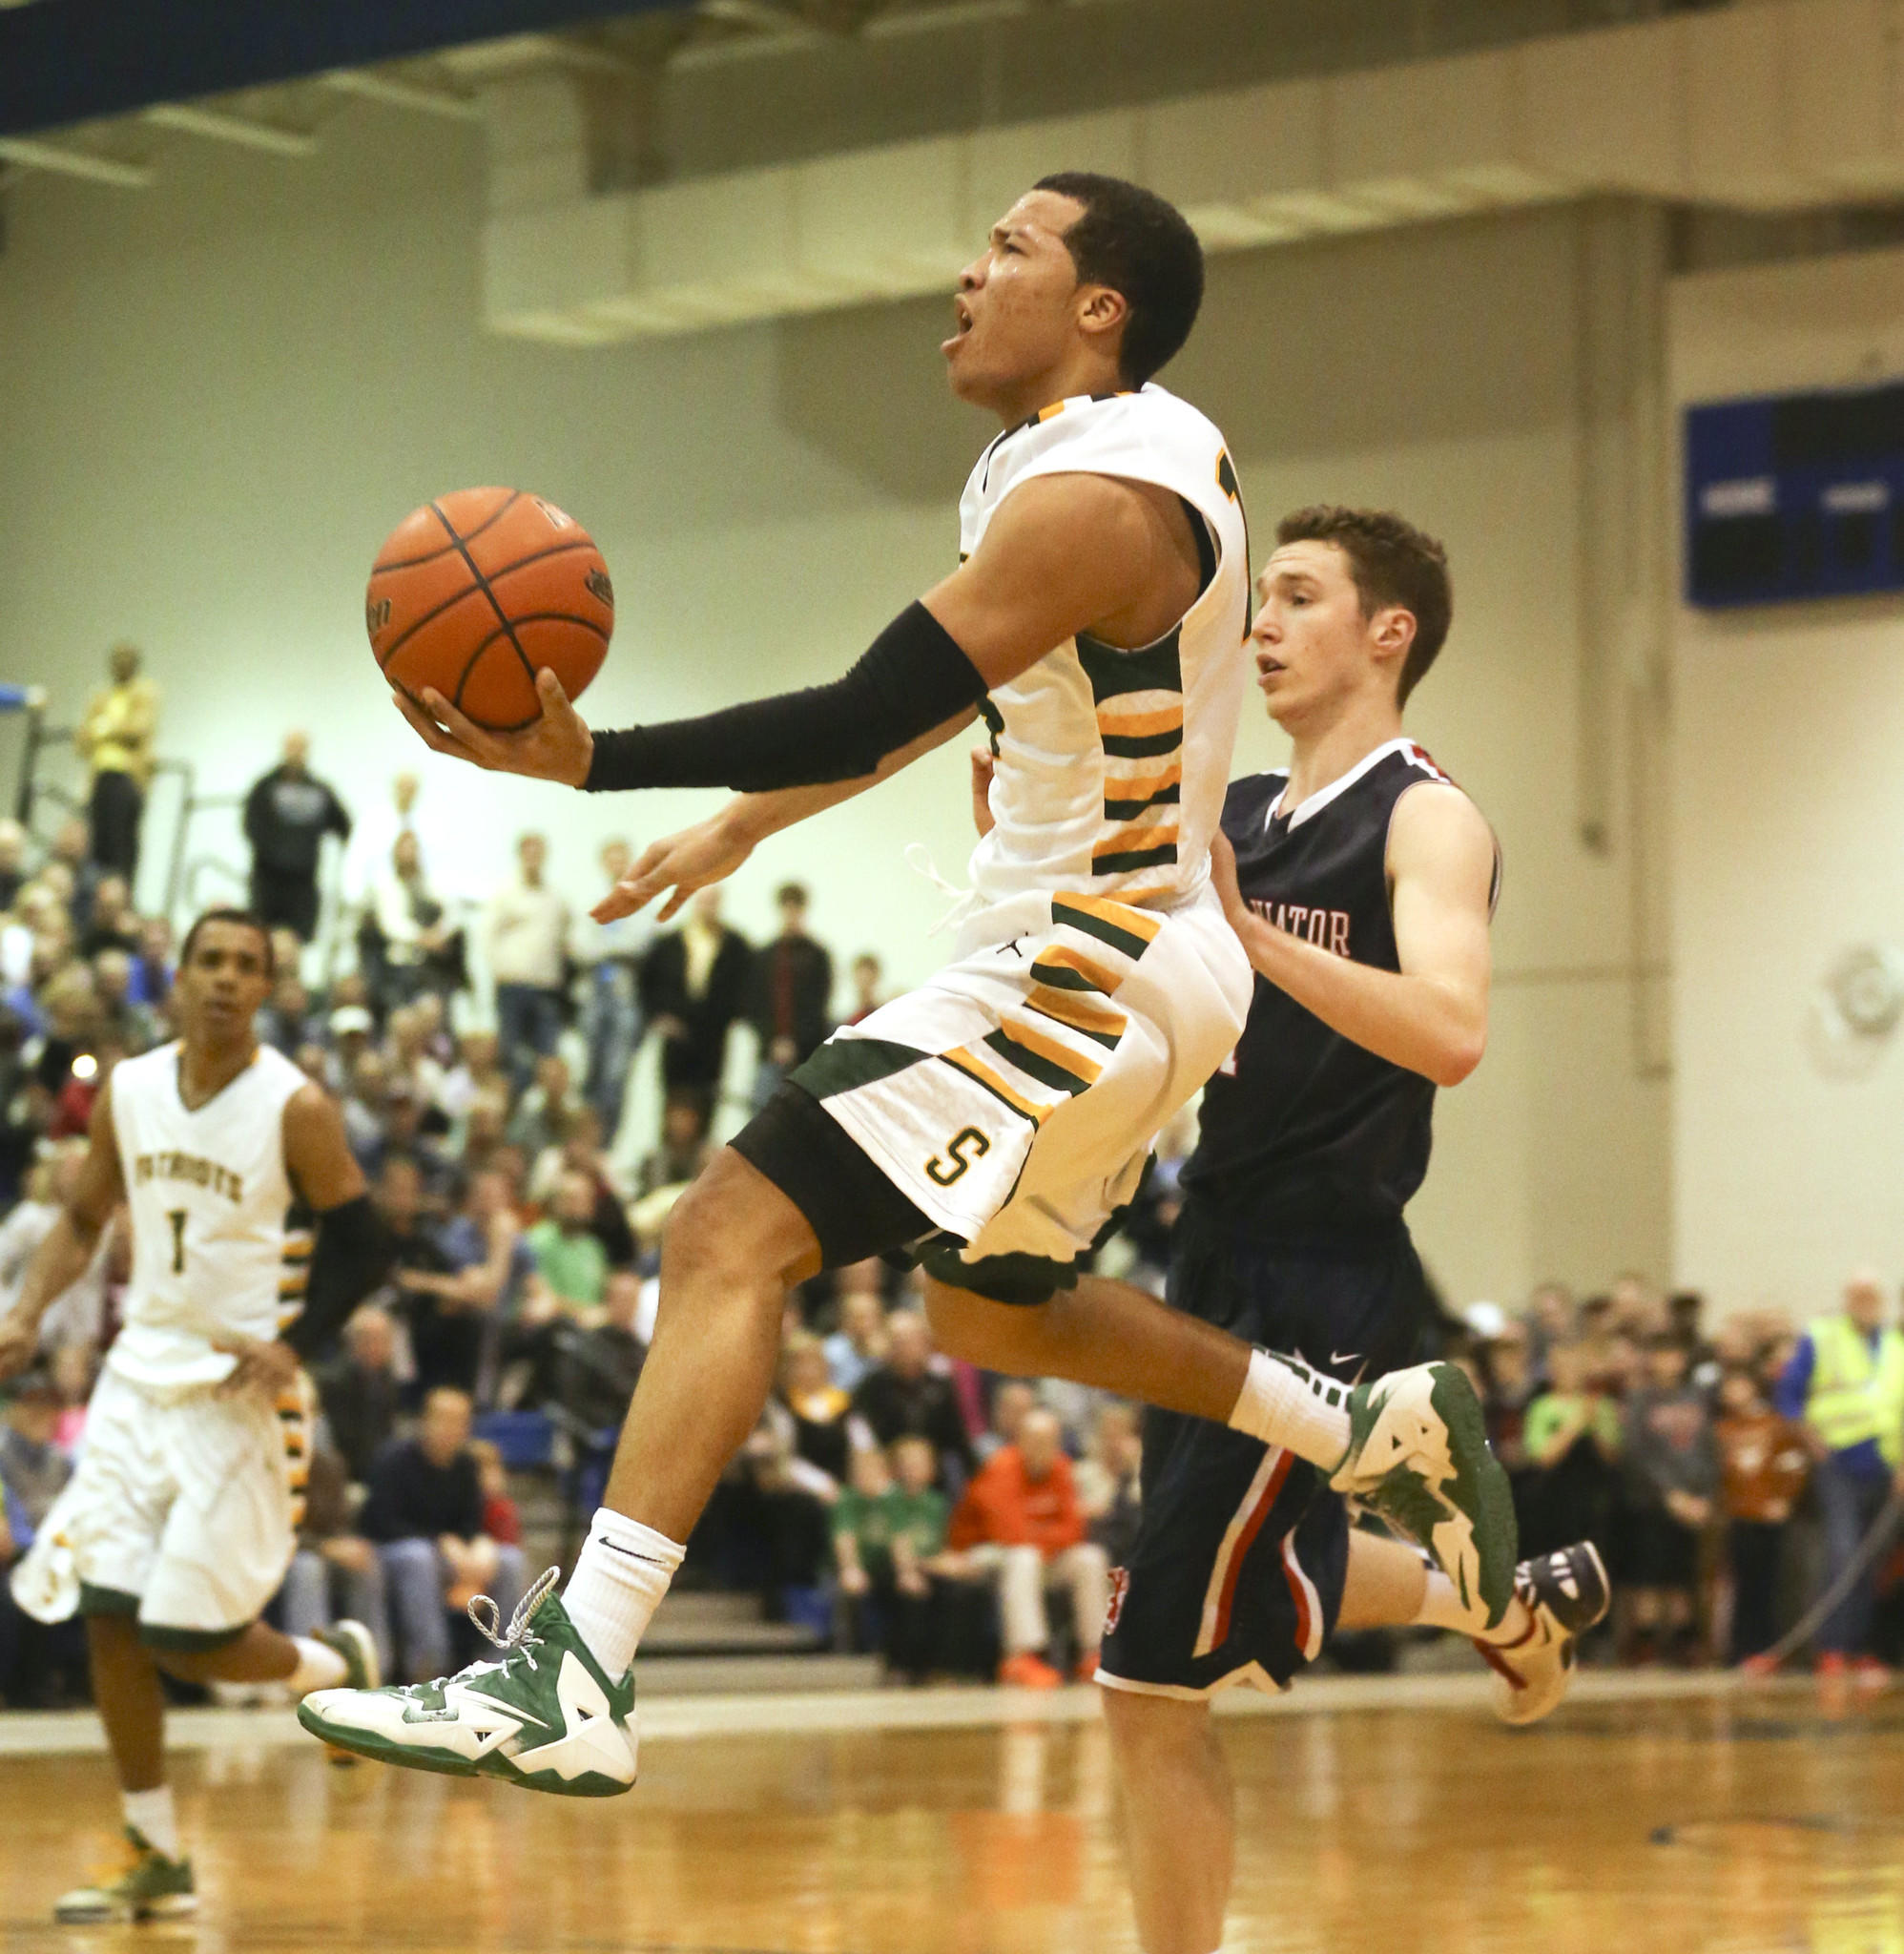 Stevenson's Jalen Brunson goes to the basket against St. Viator on Tuesday, March 11, 2014.